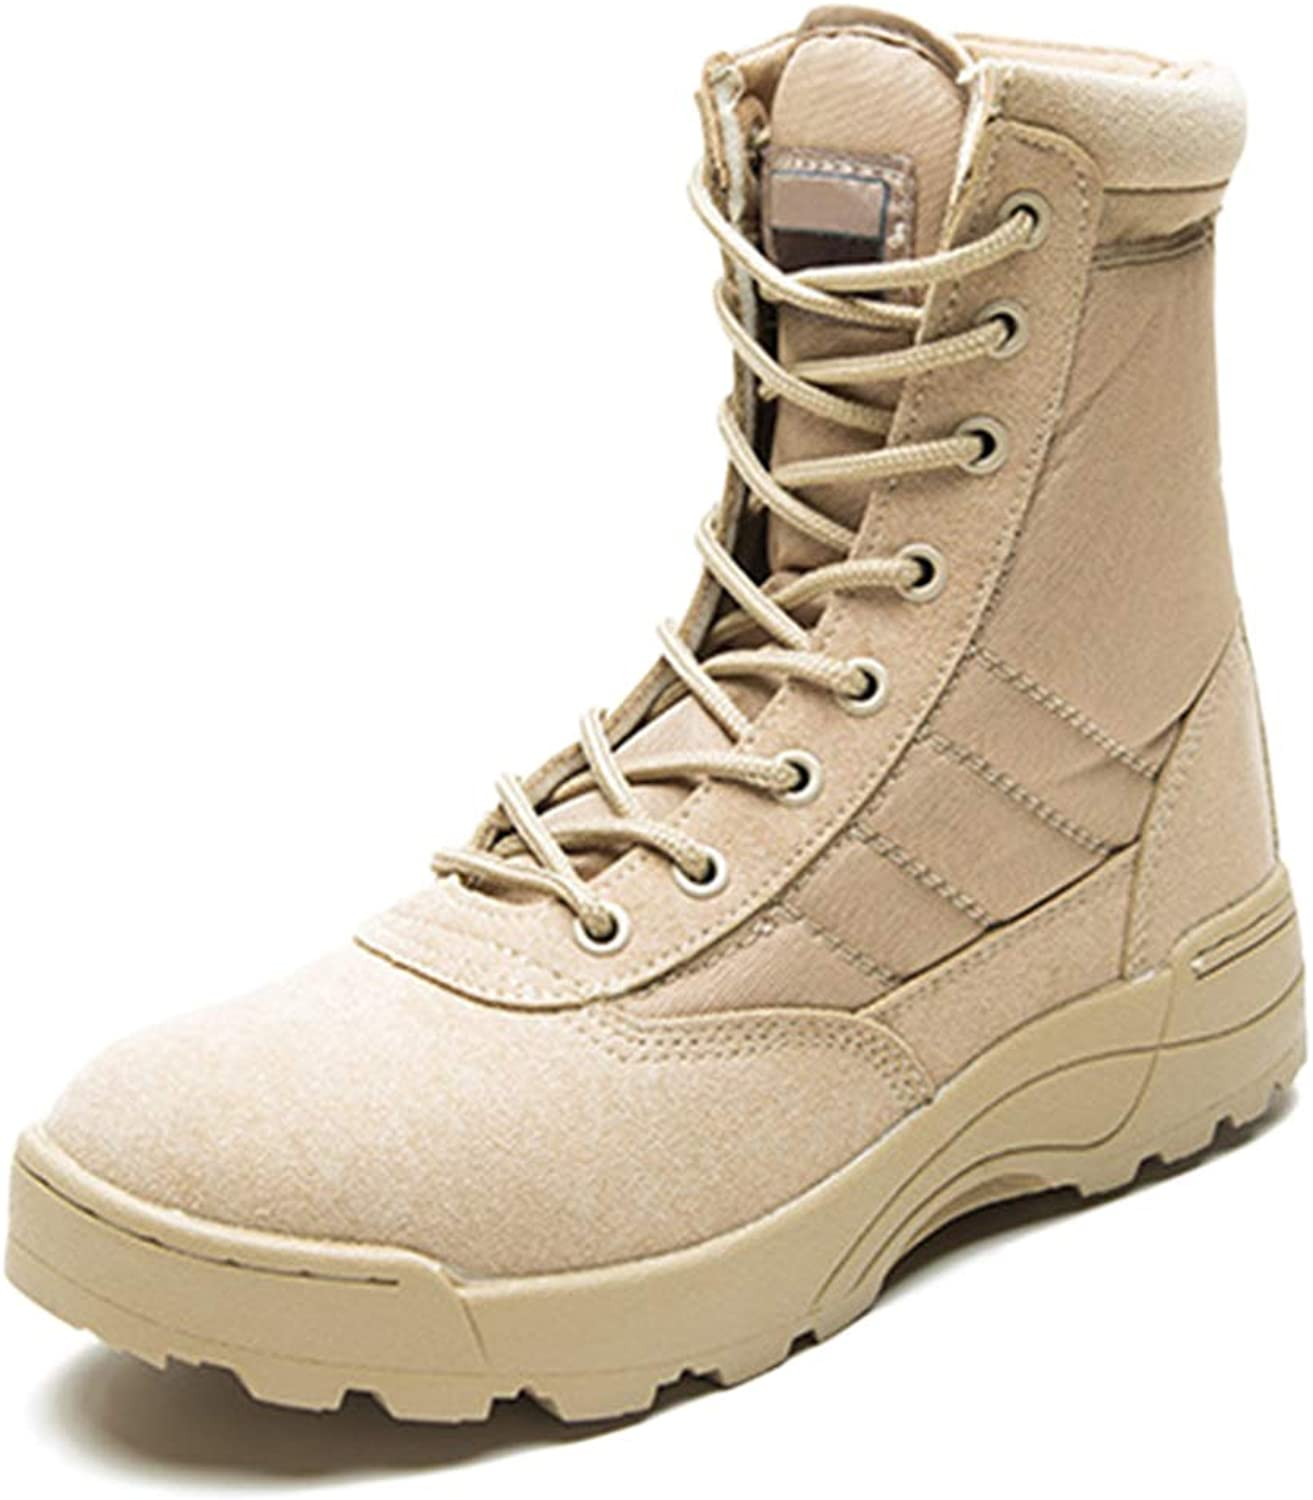 Yra Adult Army Boots Outdoor High Tops Martin Boots Men Leather Desert Boots Lace-Up shoes Hiking Hiking Footwear Unisex Large Size 37-45